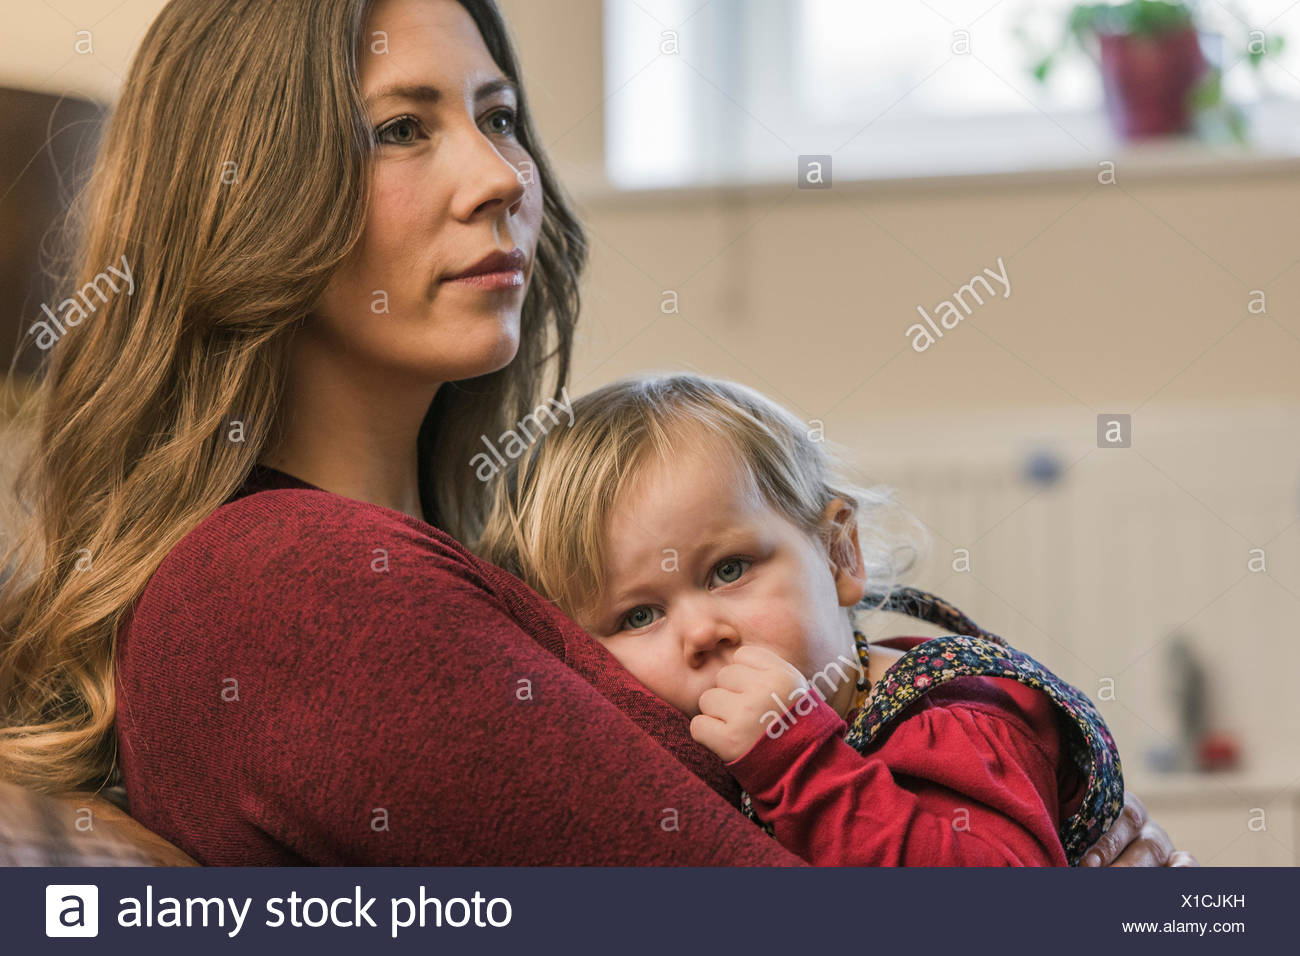 Woman and child relaxing at home - Stock Image